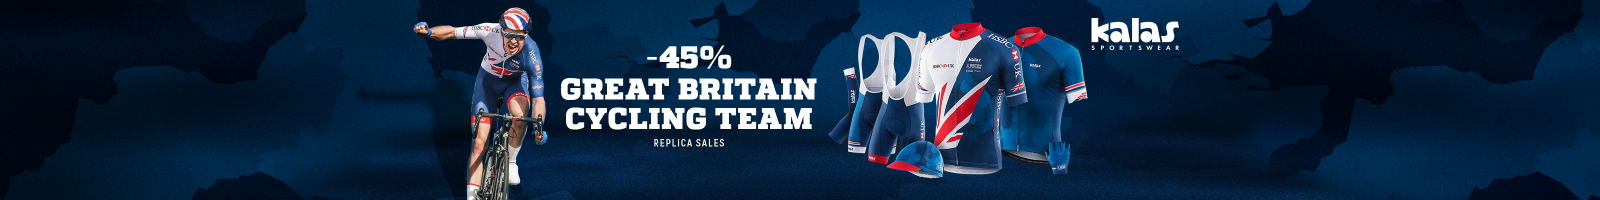 Buy your replica Great Britain Cycling Team kit here now, with a massive 45% off.